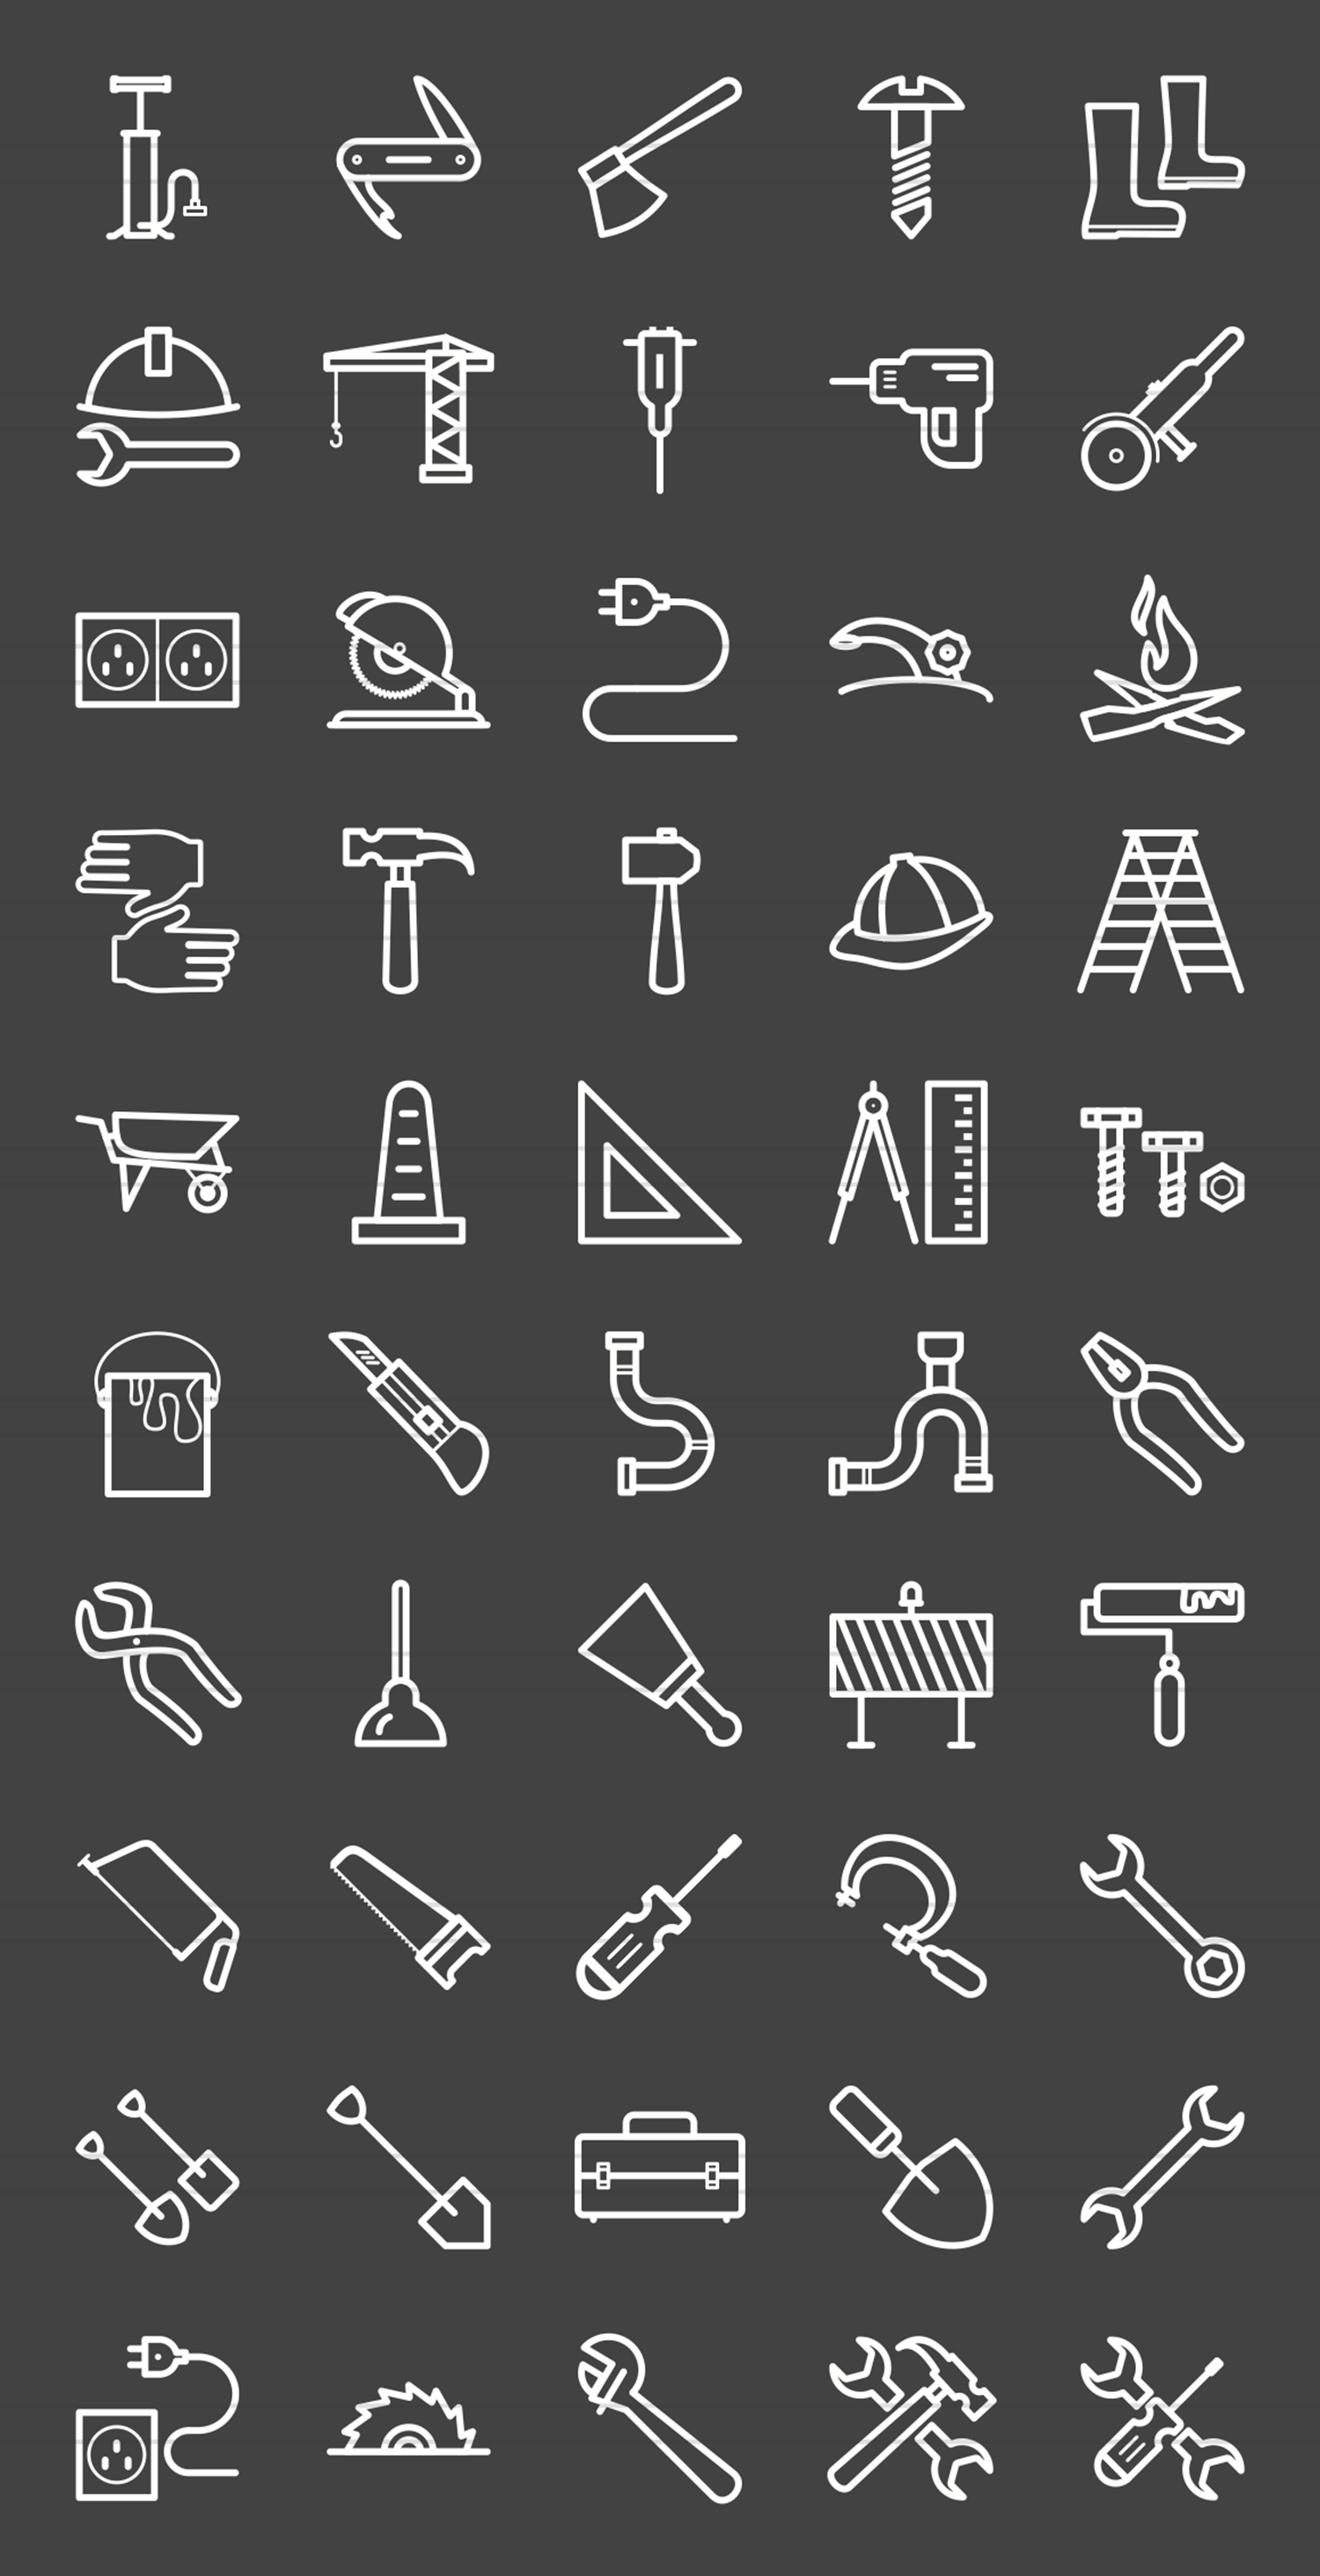 50 Tools Line Inverted Icons example image 2